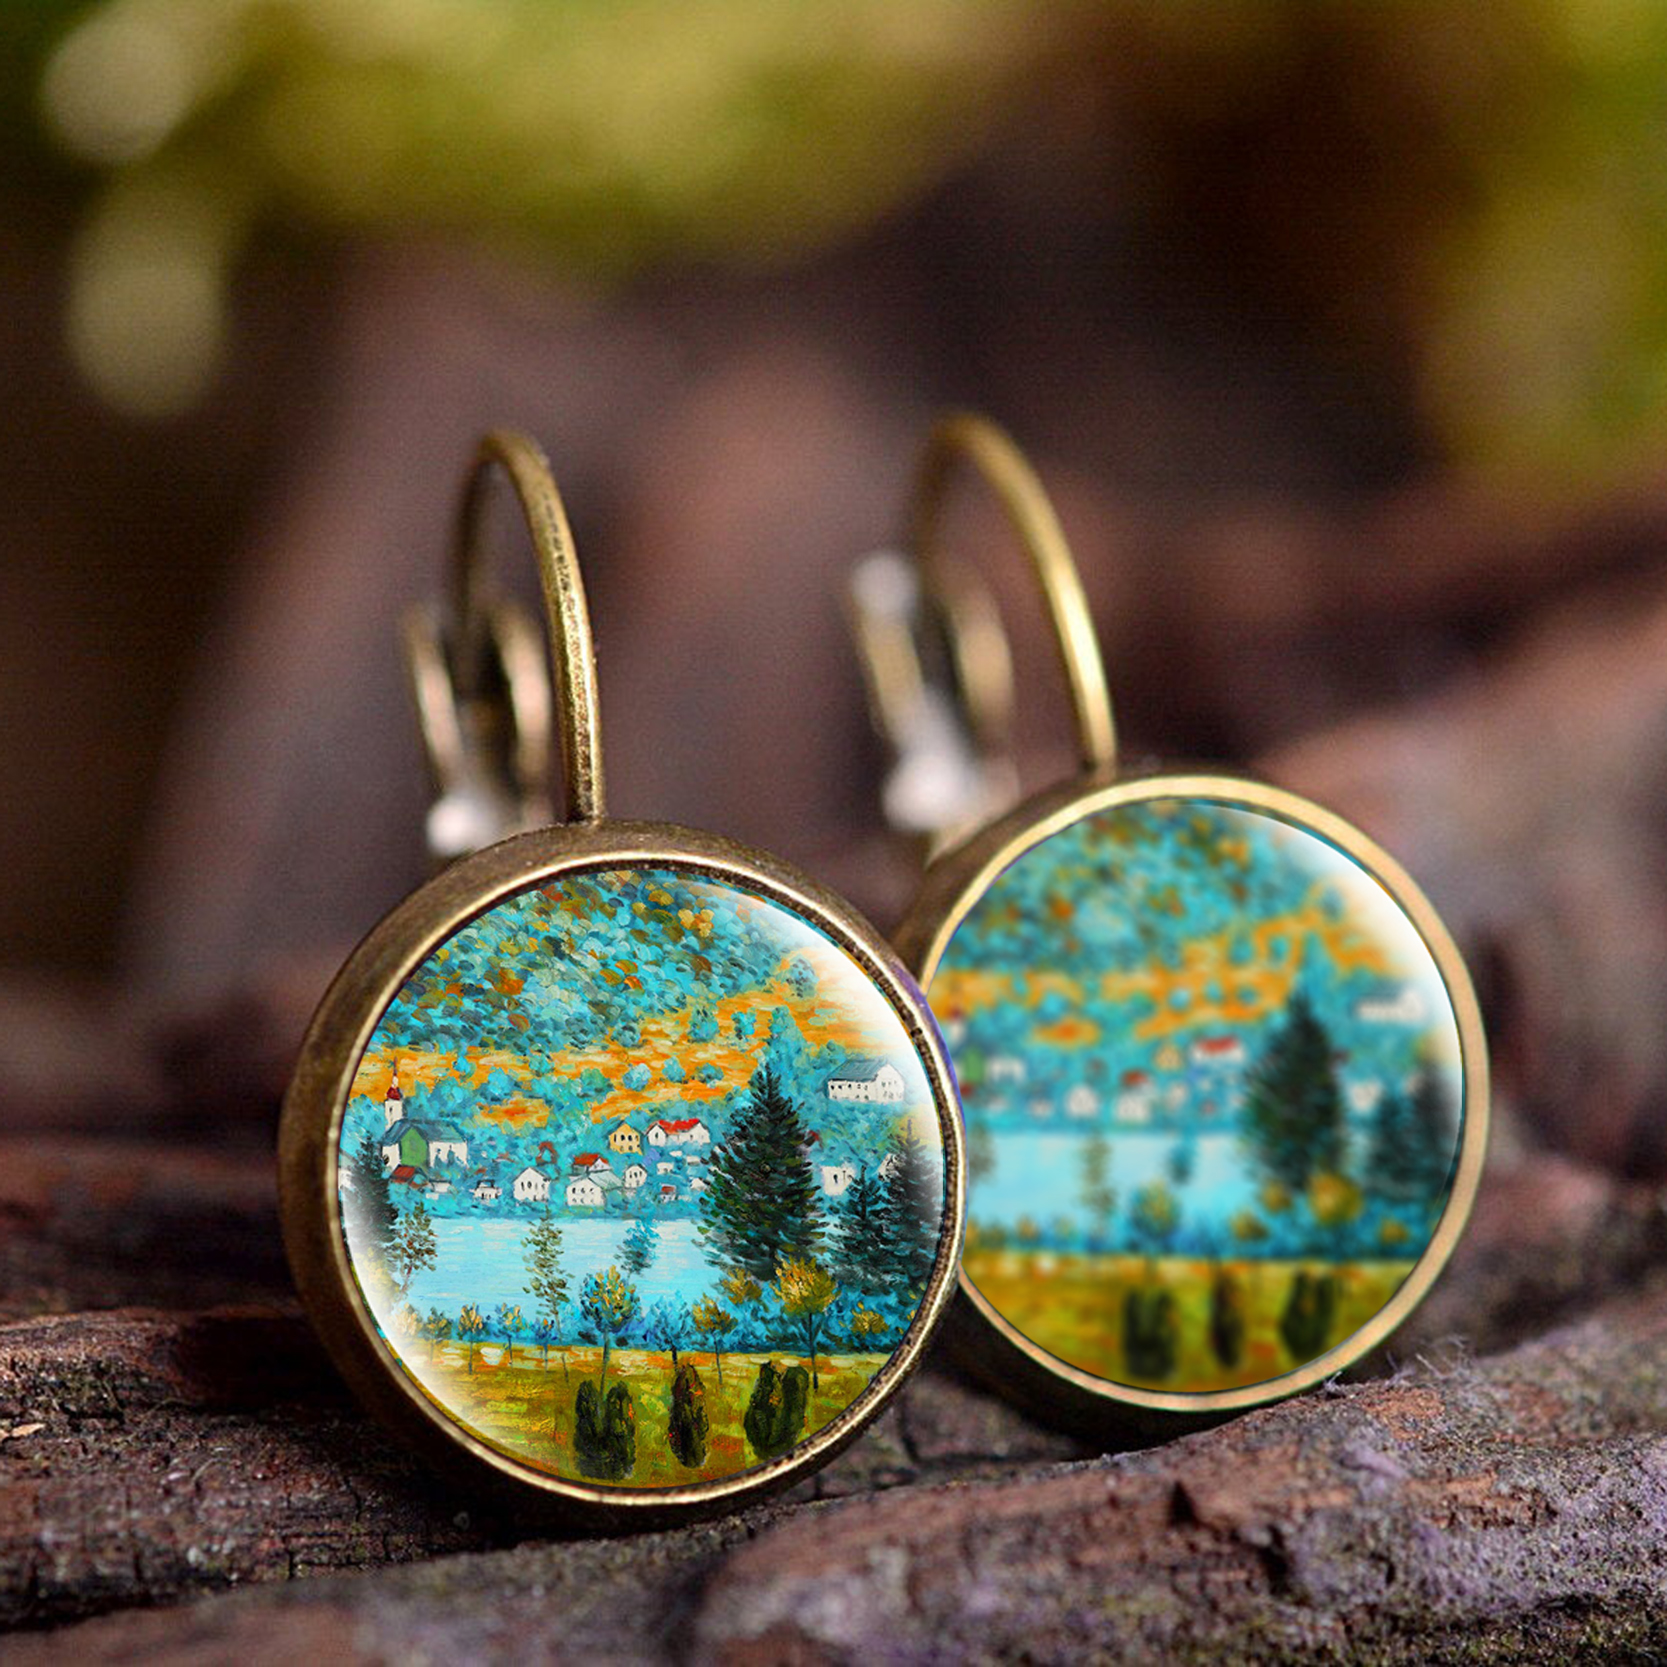 KCALOE Vintage Earrings Jewelry Van Gogh Painting Picture Glass Dome Round Copper Women Earrings Best Gift in Drop Earrings from Jewelry Accessories